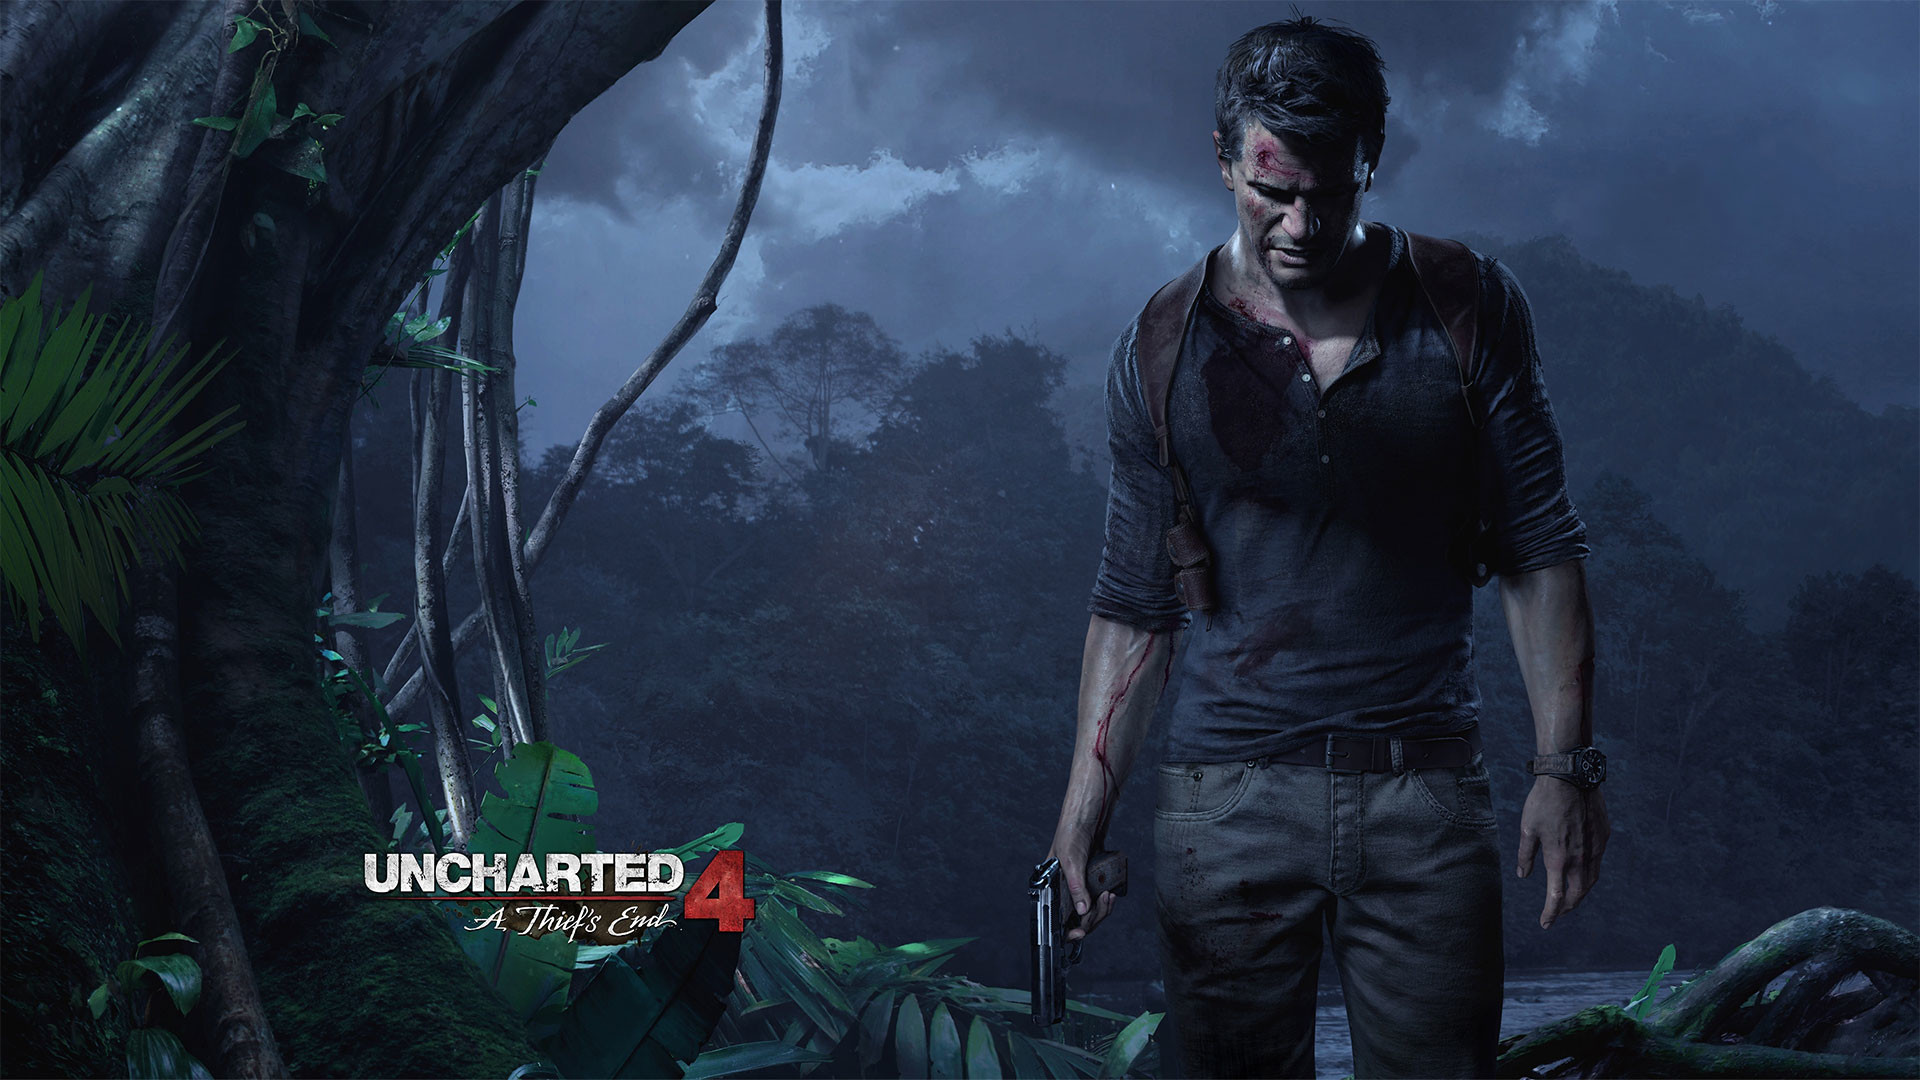 1920x1080 Uncharted 4 A Thief's End 4K Wallpaper ...